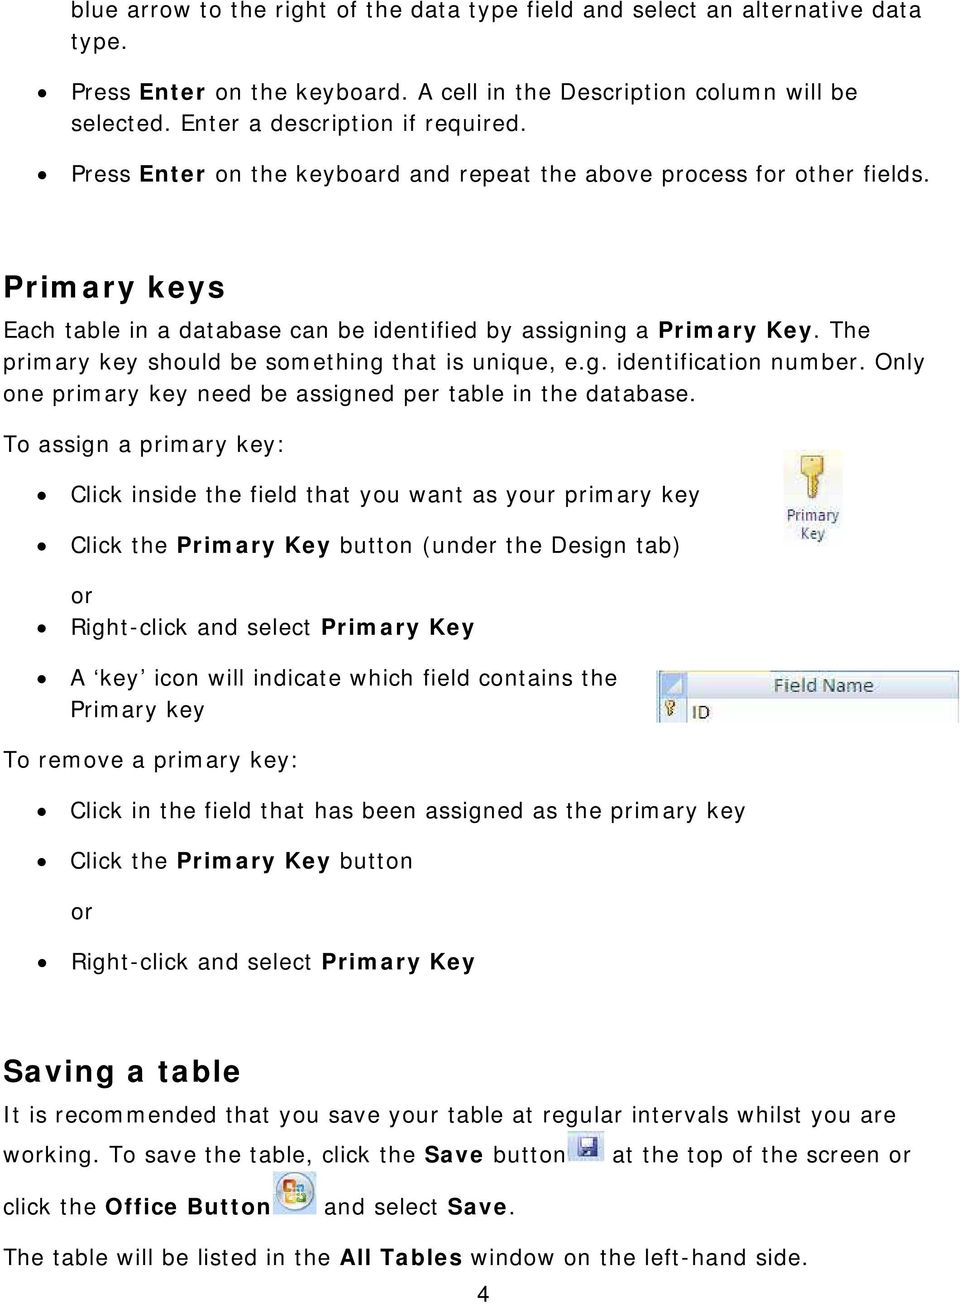 The primary key should be something that is unique, e.g. identification number. Only one primary key need be assigned per table in the database.